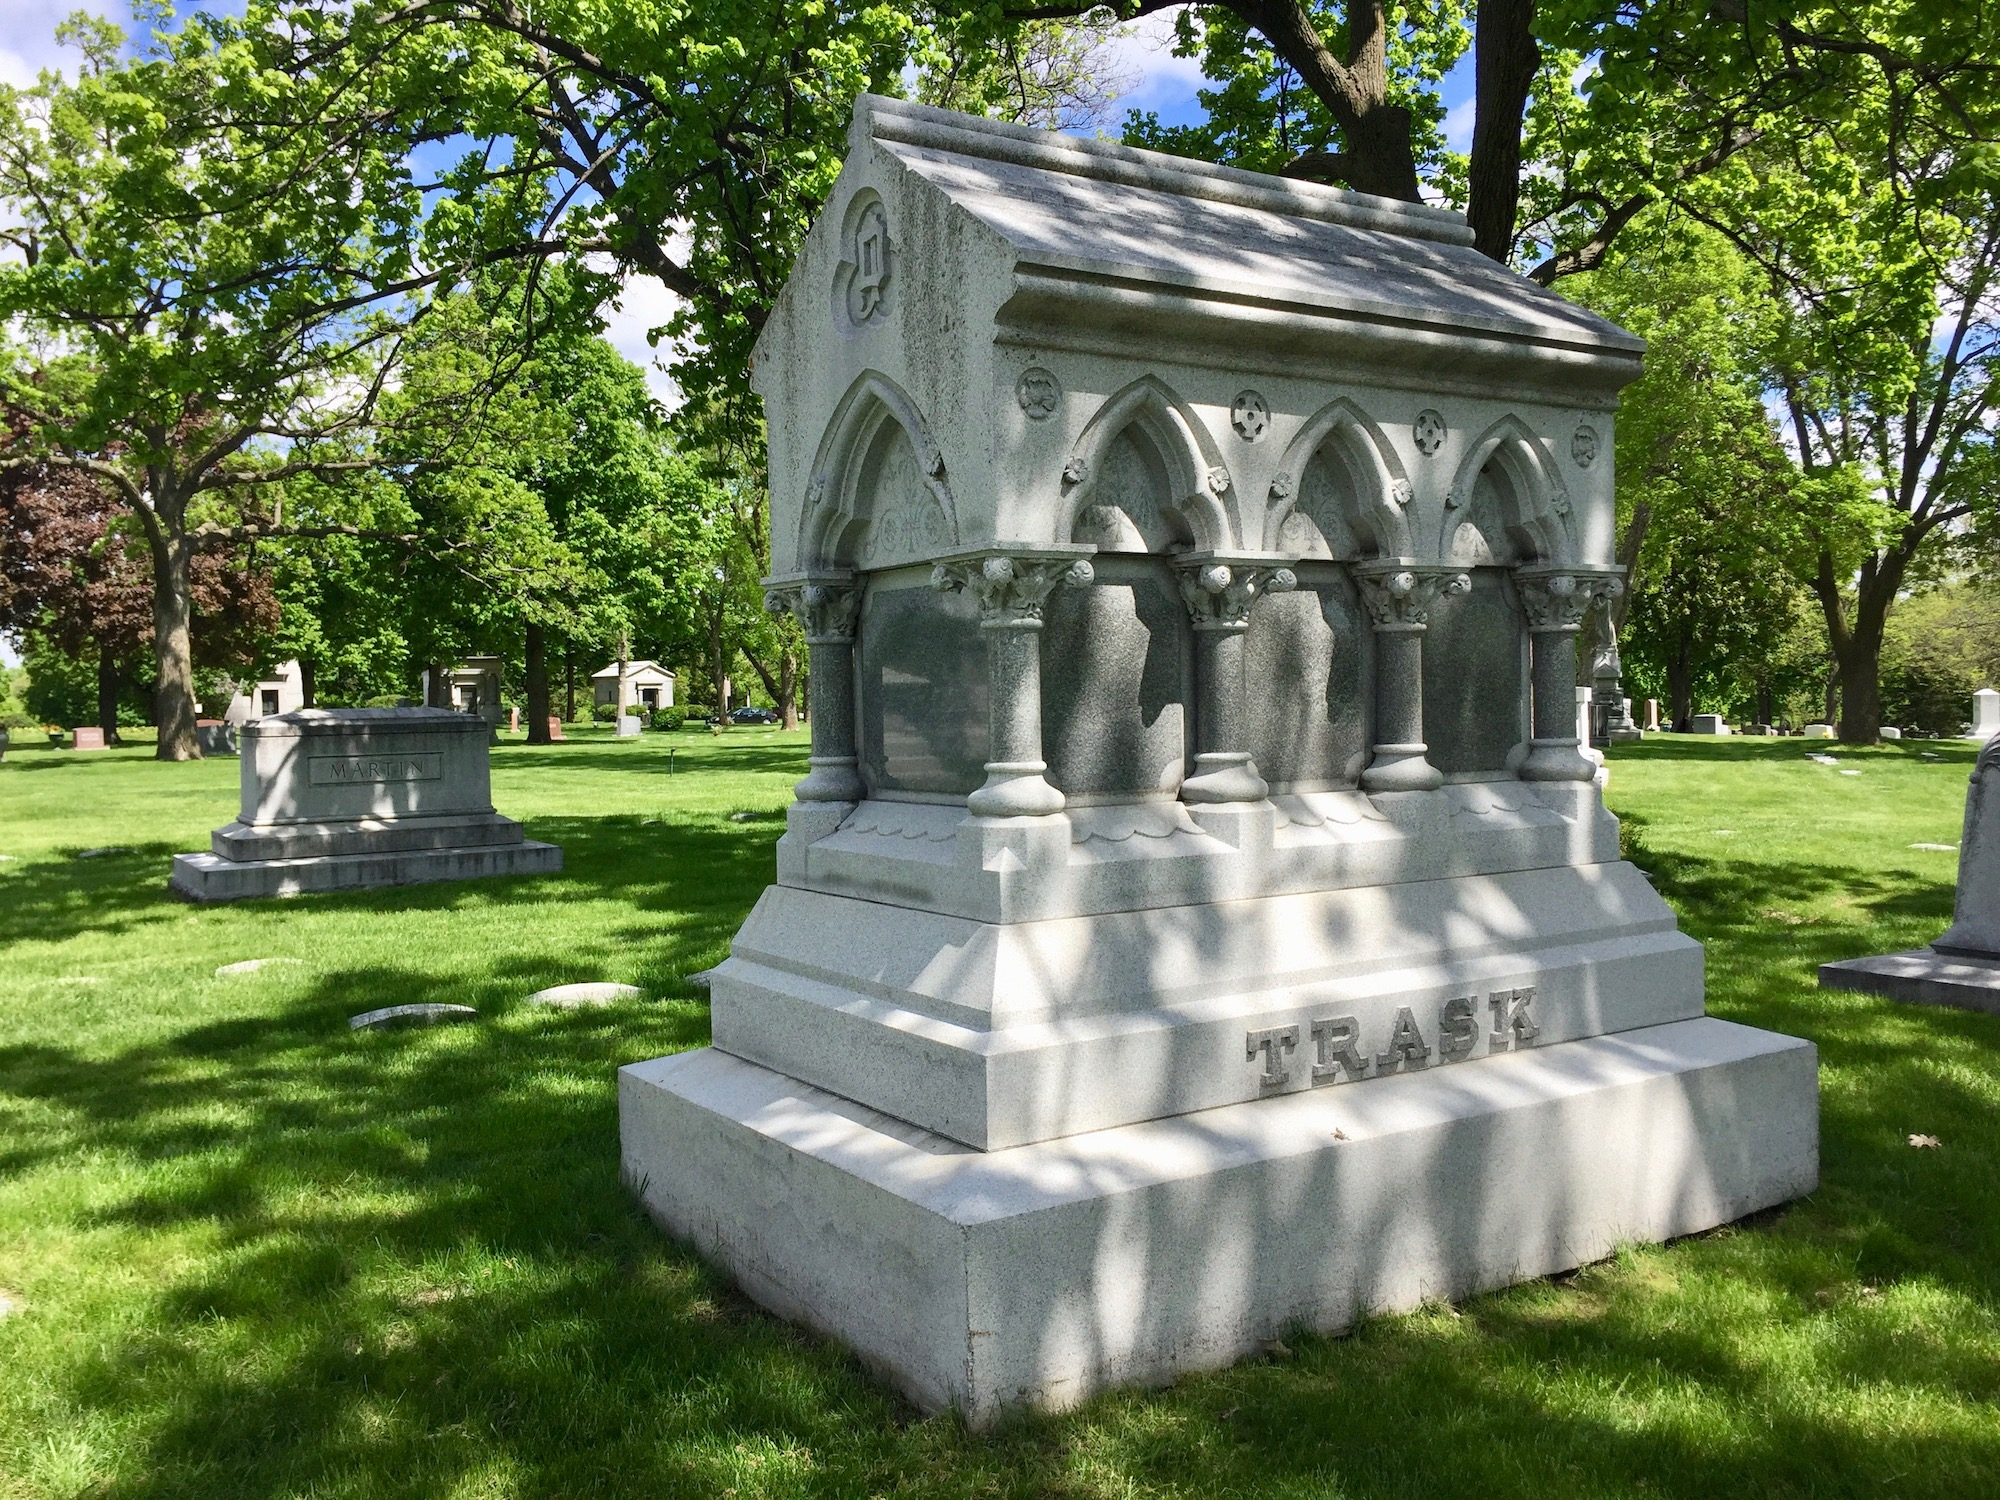 Dudley-Trask monument